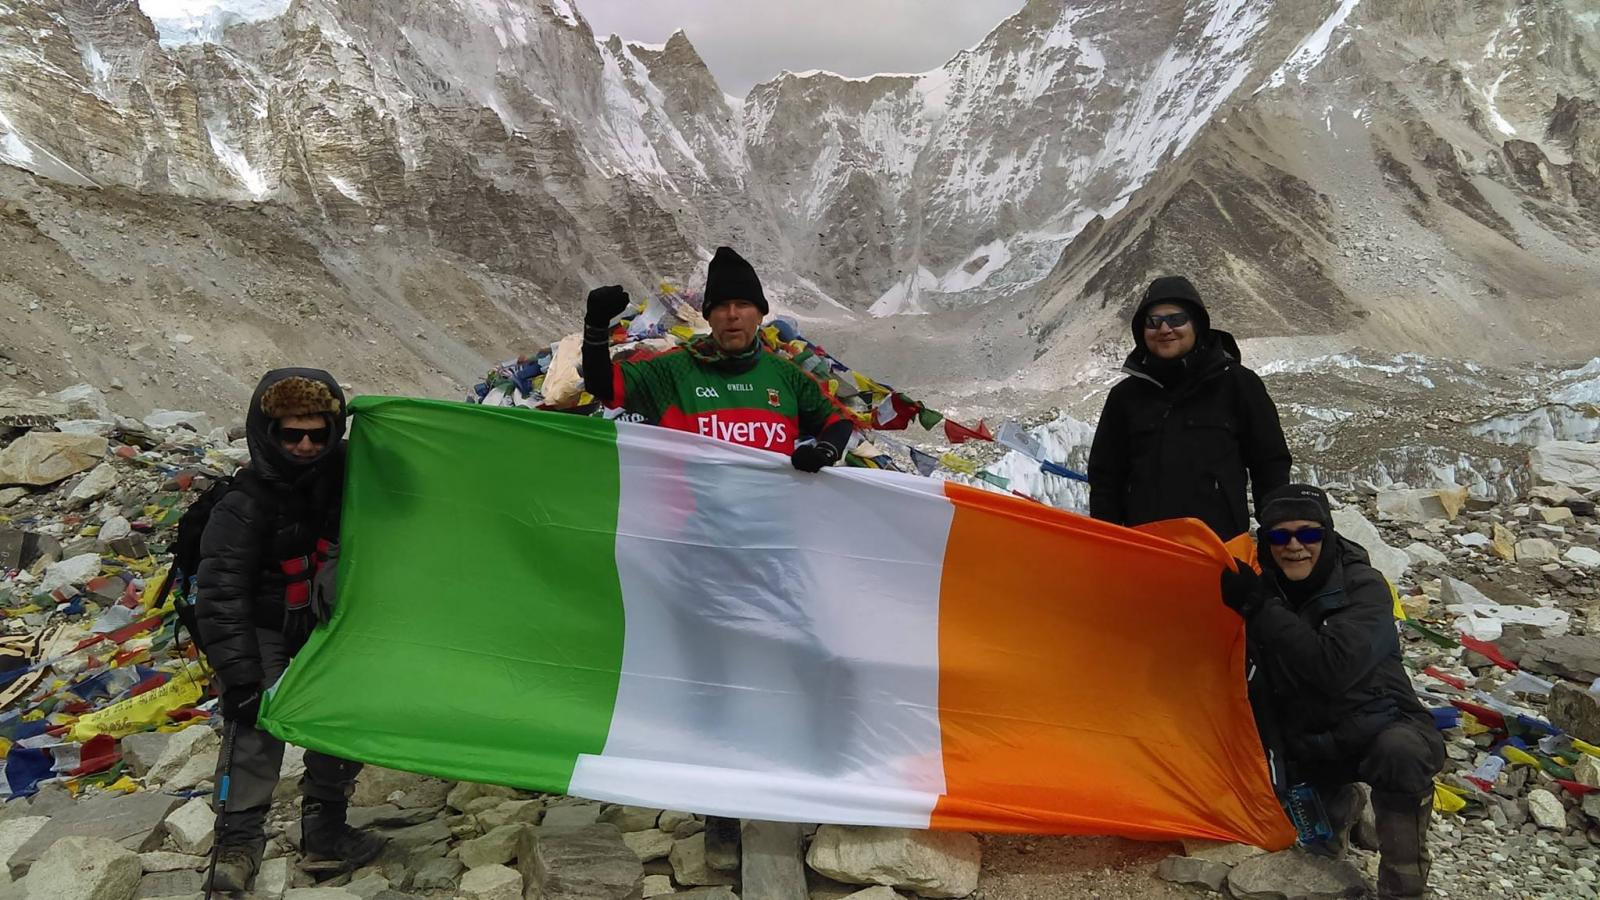 Trekkers holding an Irish flag on a mountain